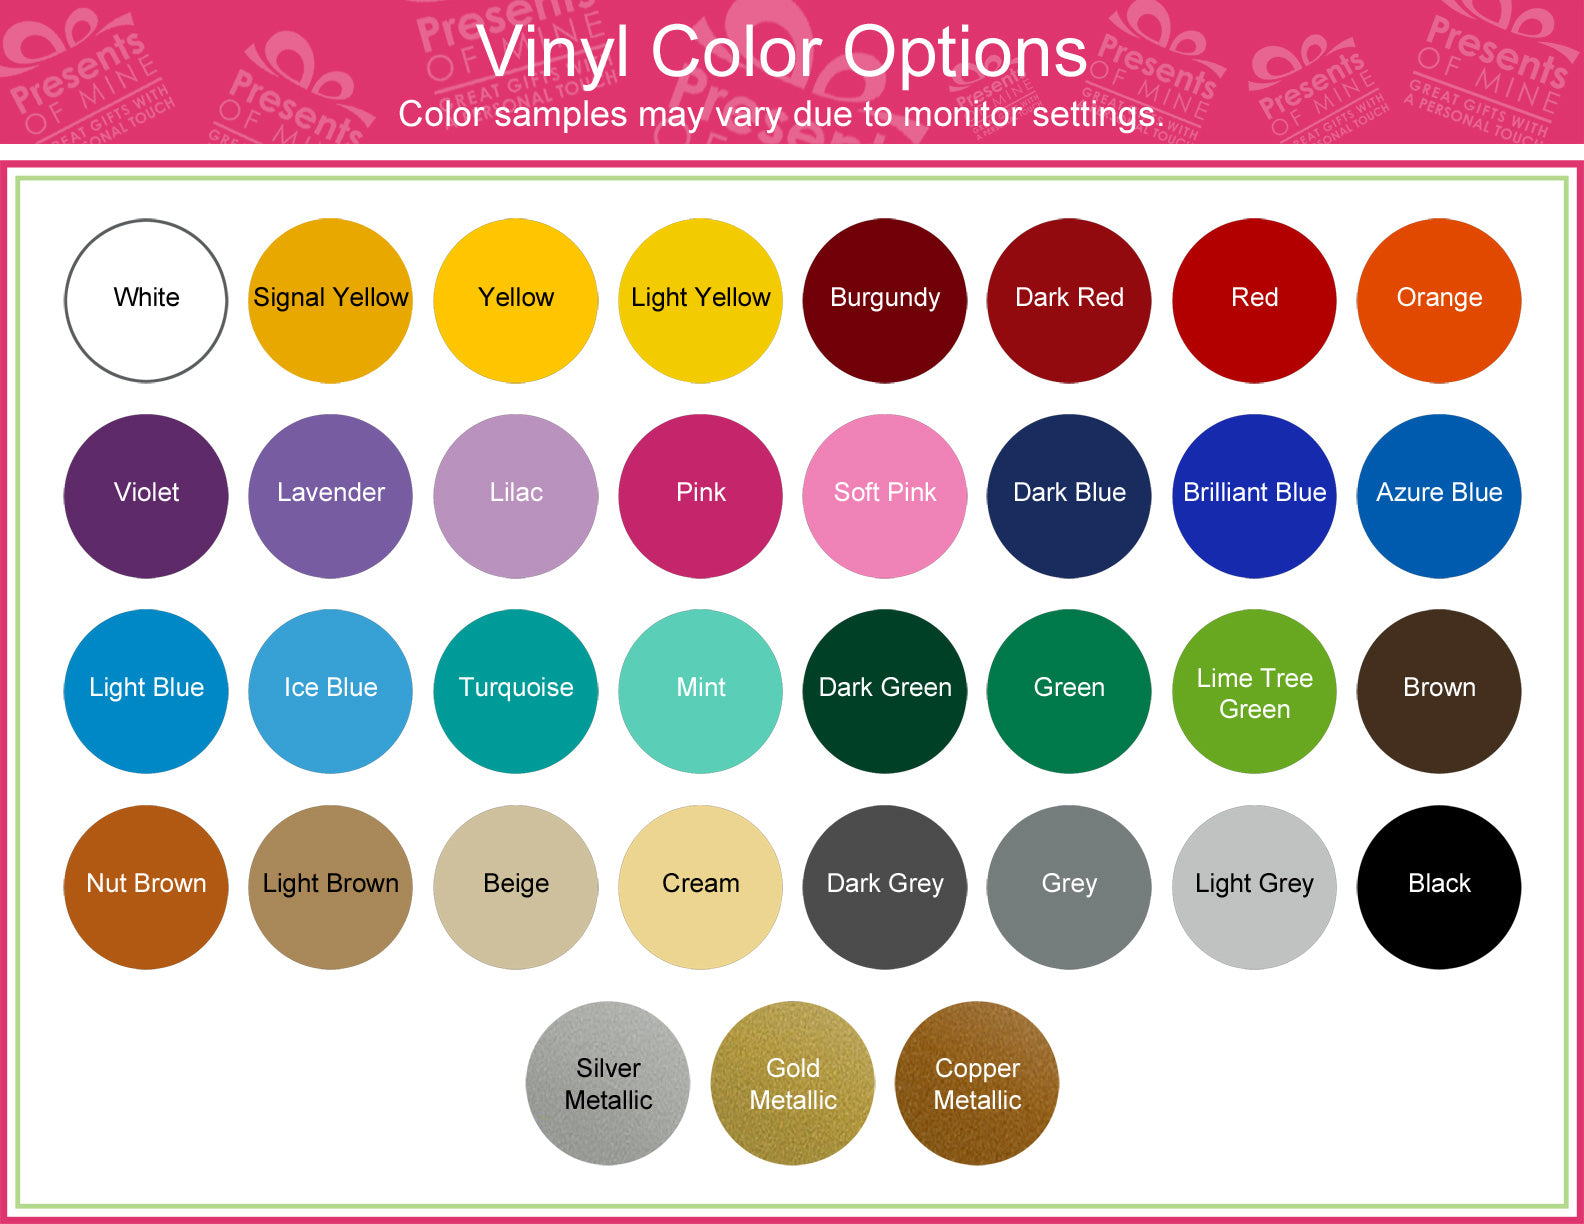 jewelry colors chart personalized and monogrammed gifts presents